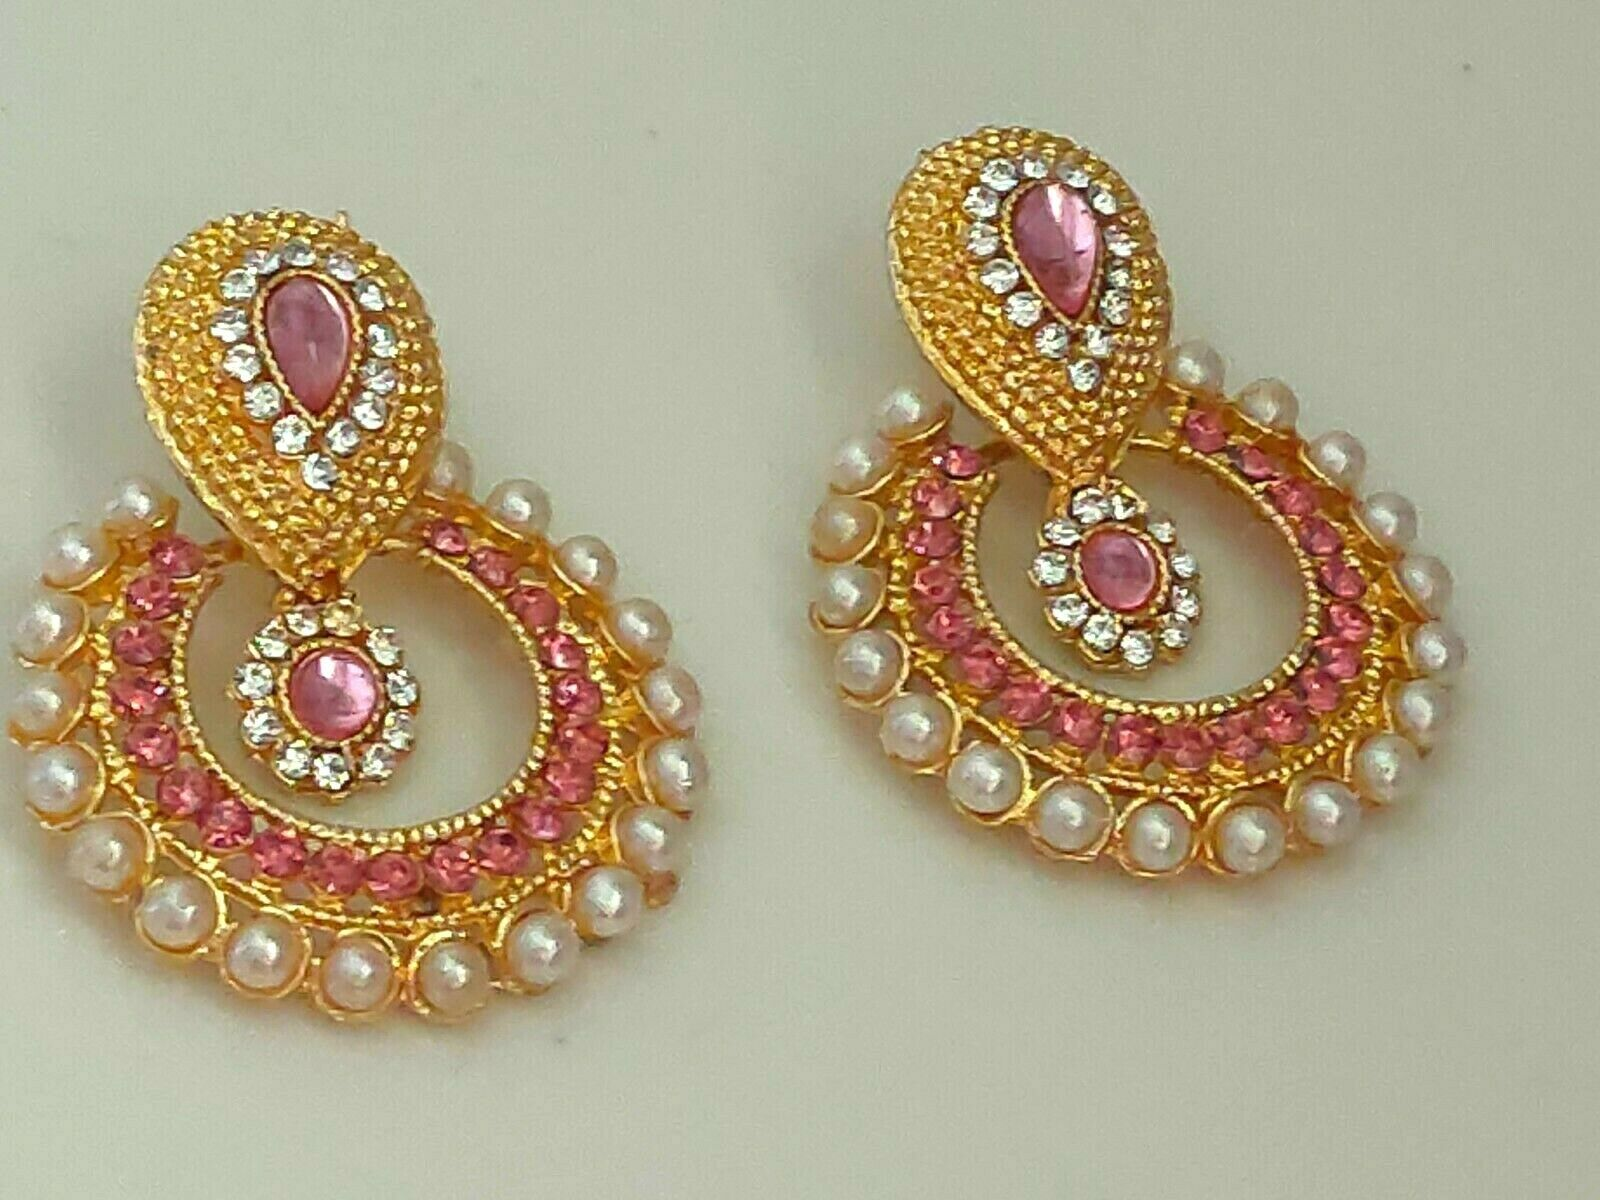 Indian Bollywood Pink Crystal Pearls Girls Chand Bali Fashion Jewelry Earrings